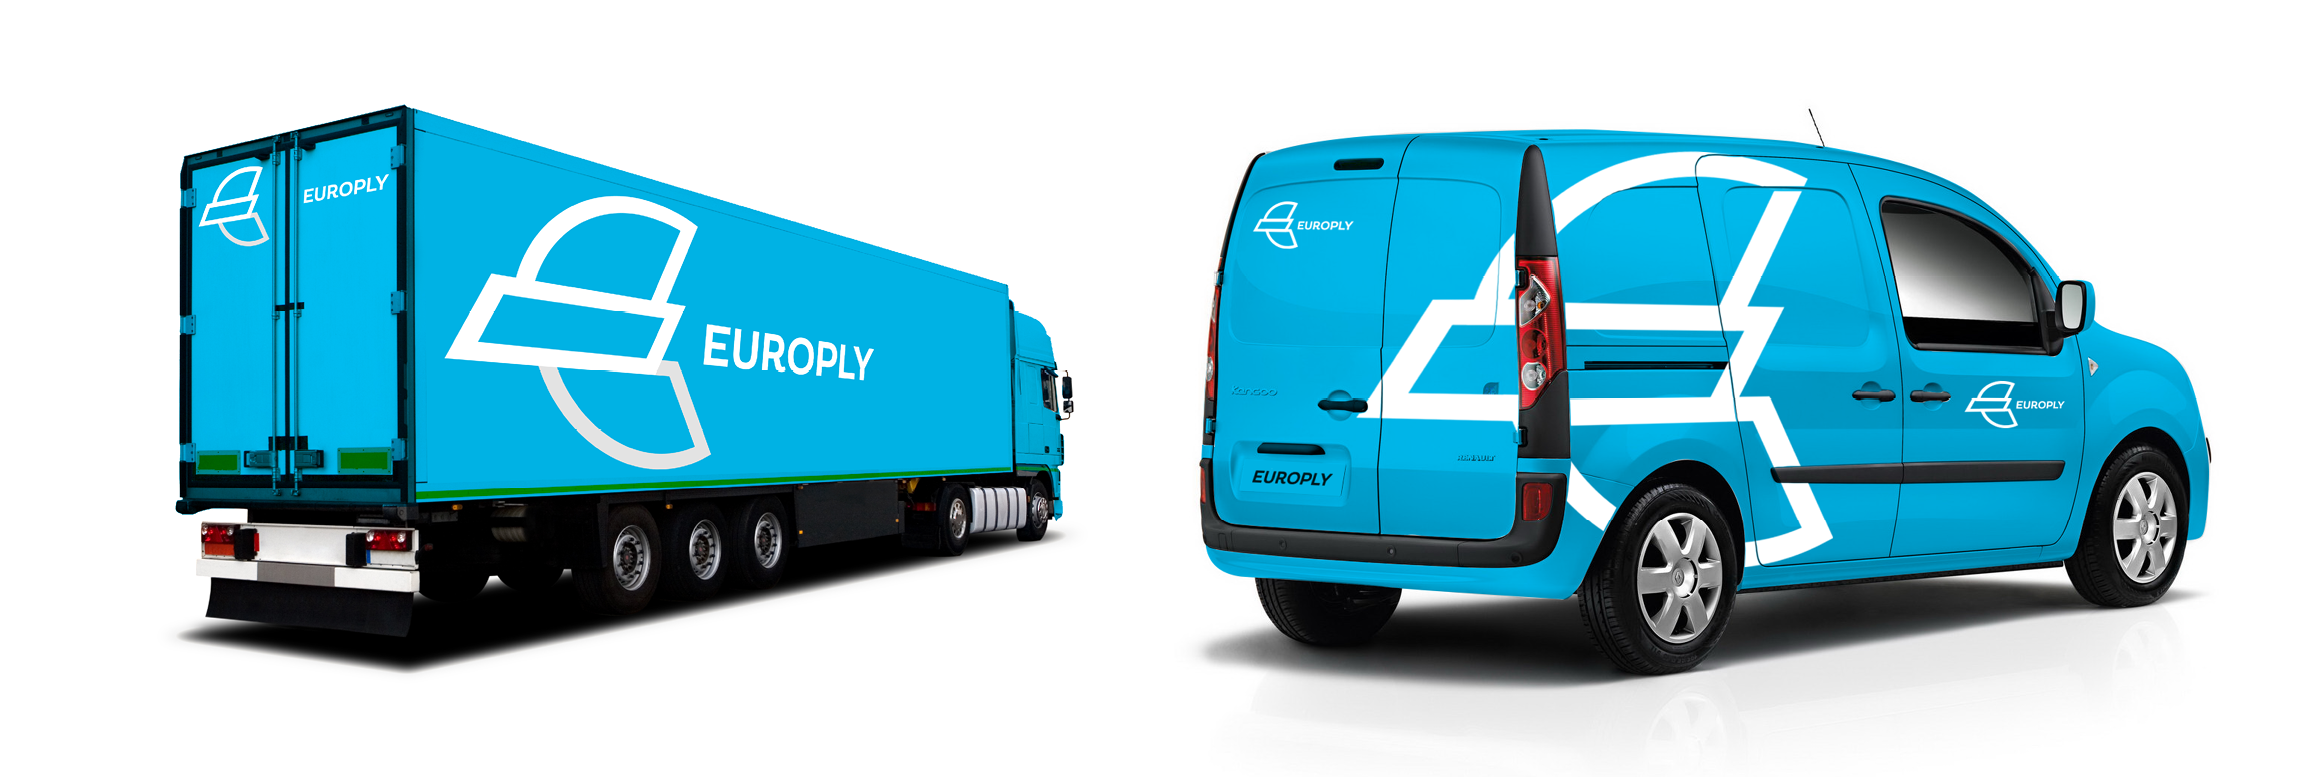 europly_vehicules03.png